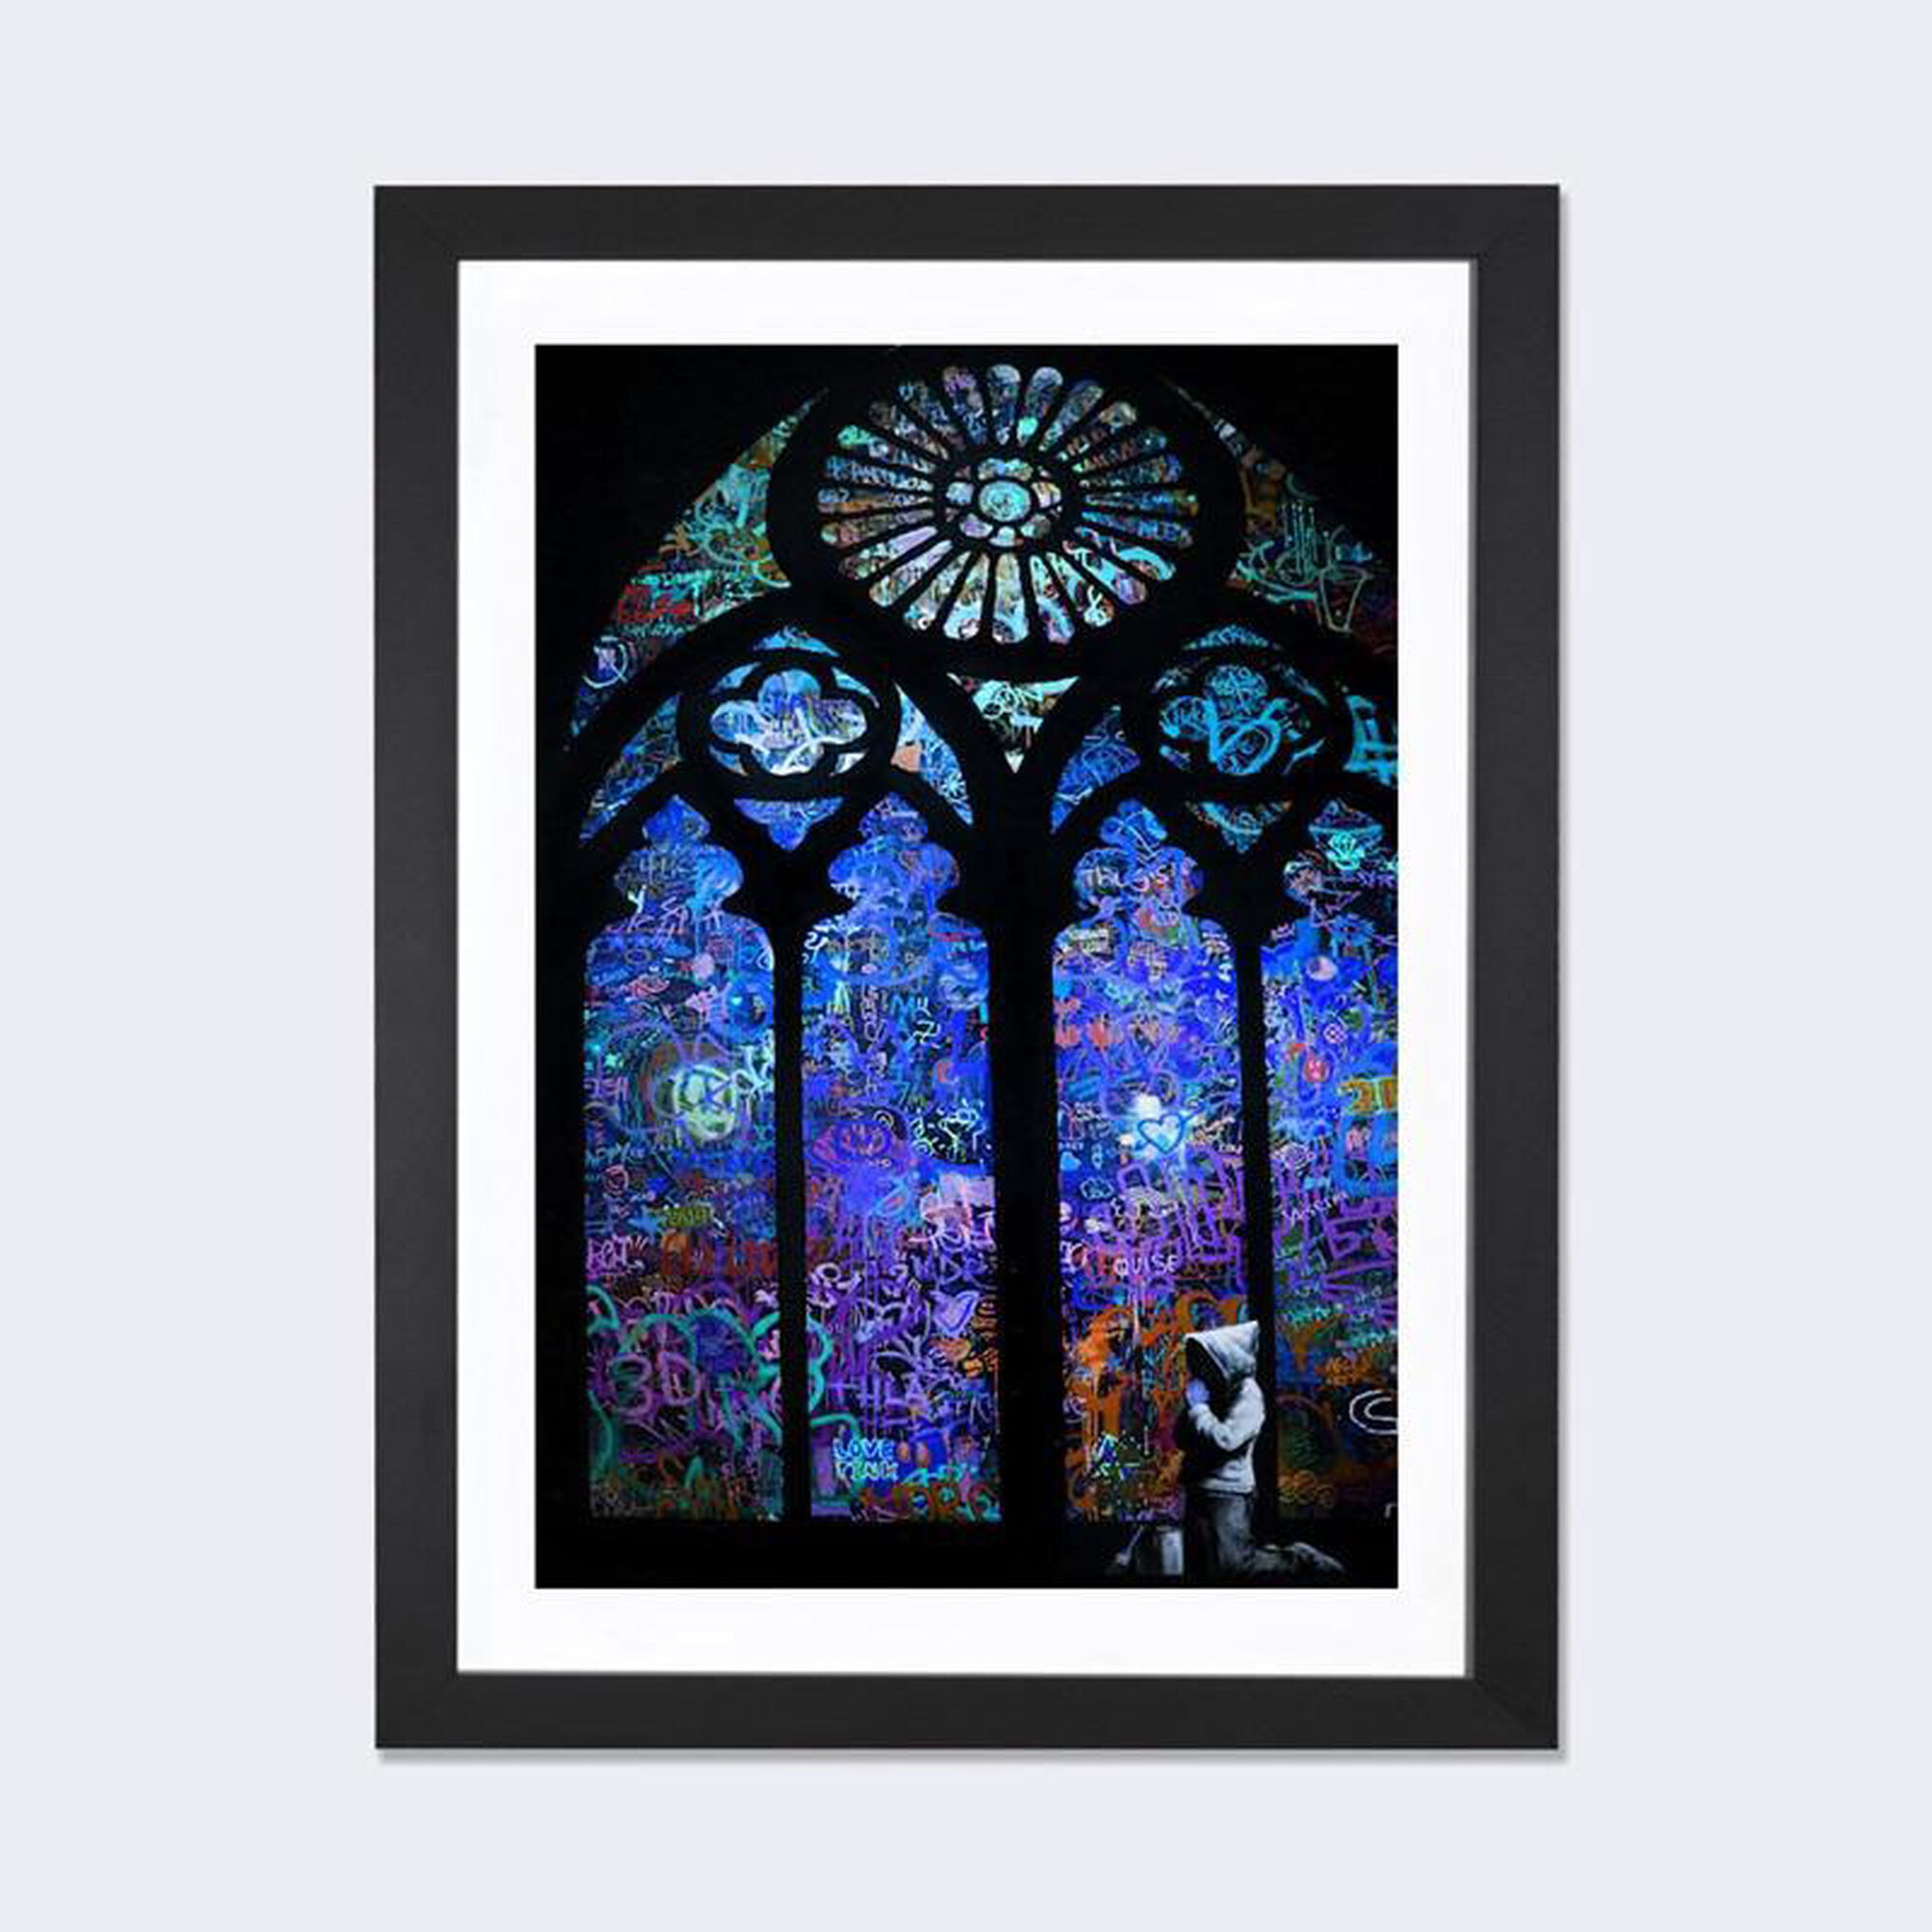 Icanvas stained glass window ii by banksy artwork on fine for 16 window